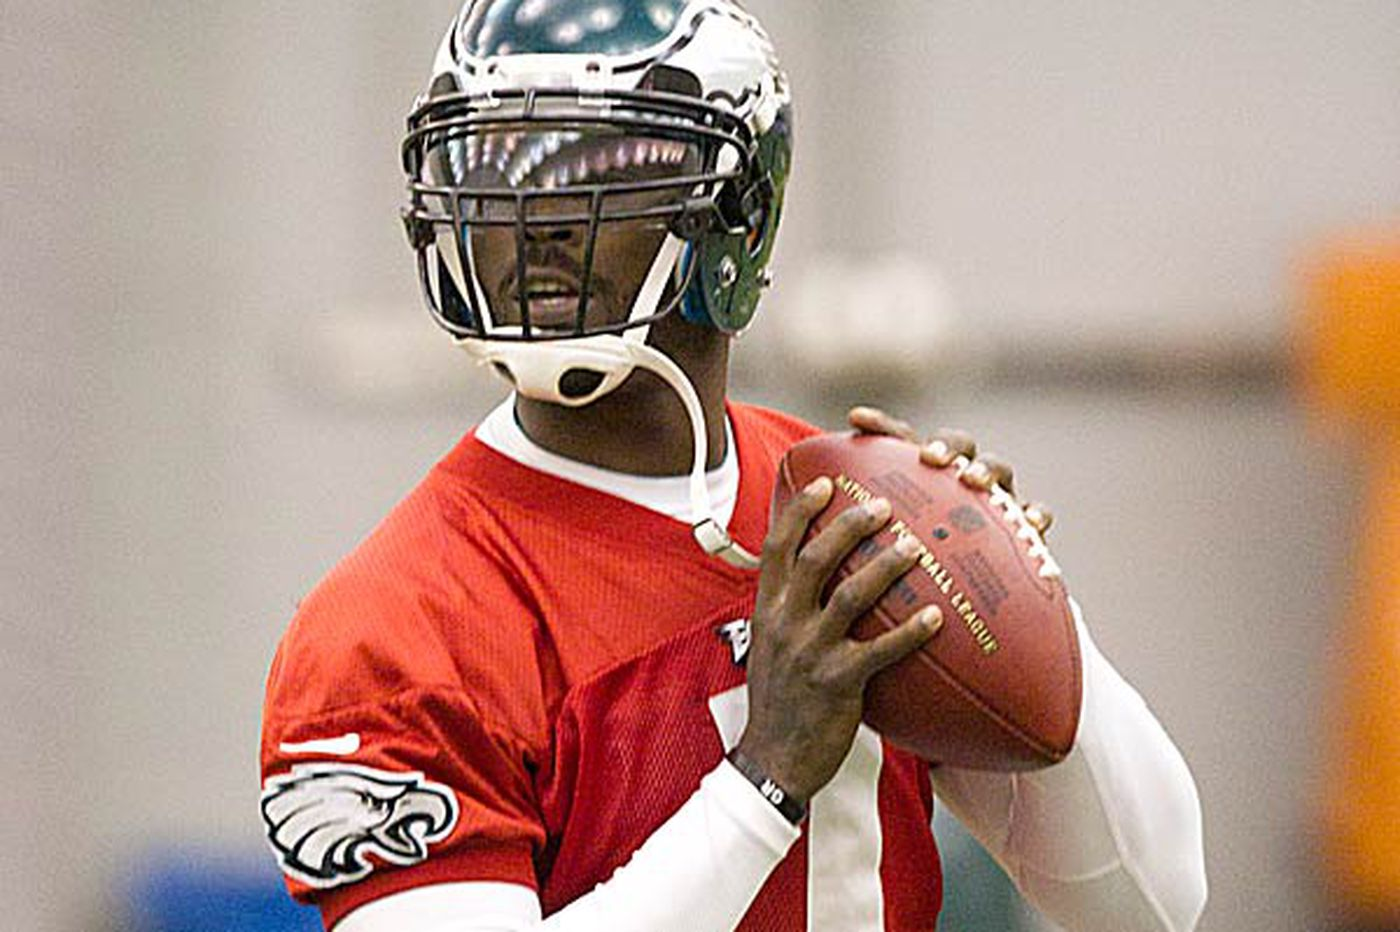 Eagles quarterback Michael Vick hopeful he can finish season on a positive note